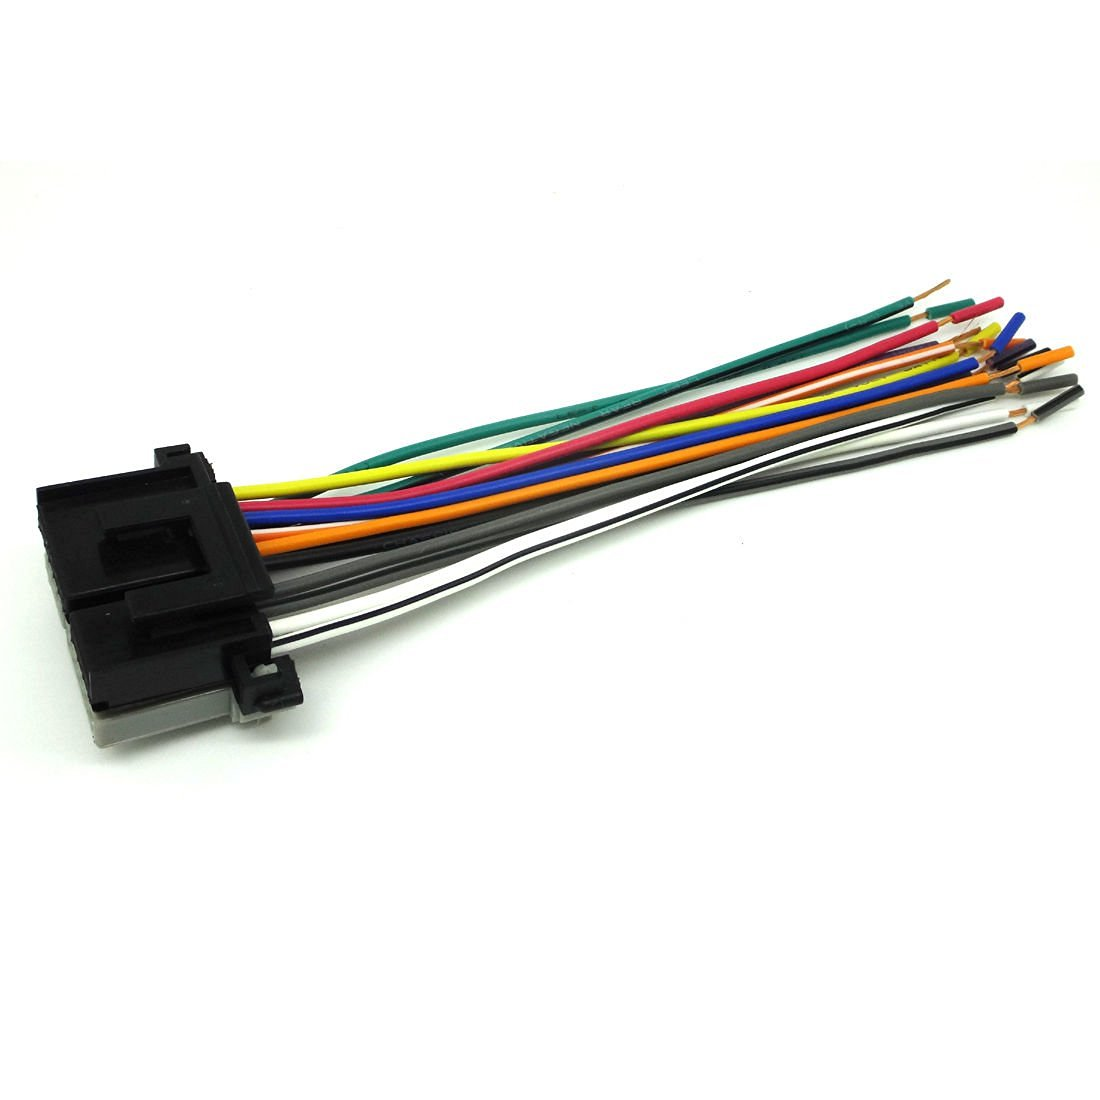 hight resolution of get quotations gm plugs into factory radio car stereo cd player wiring harness wire 1991 1994 buick